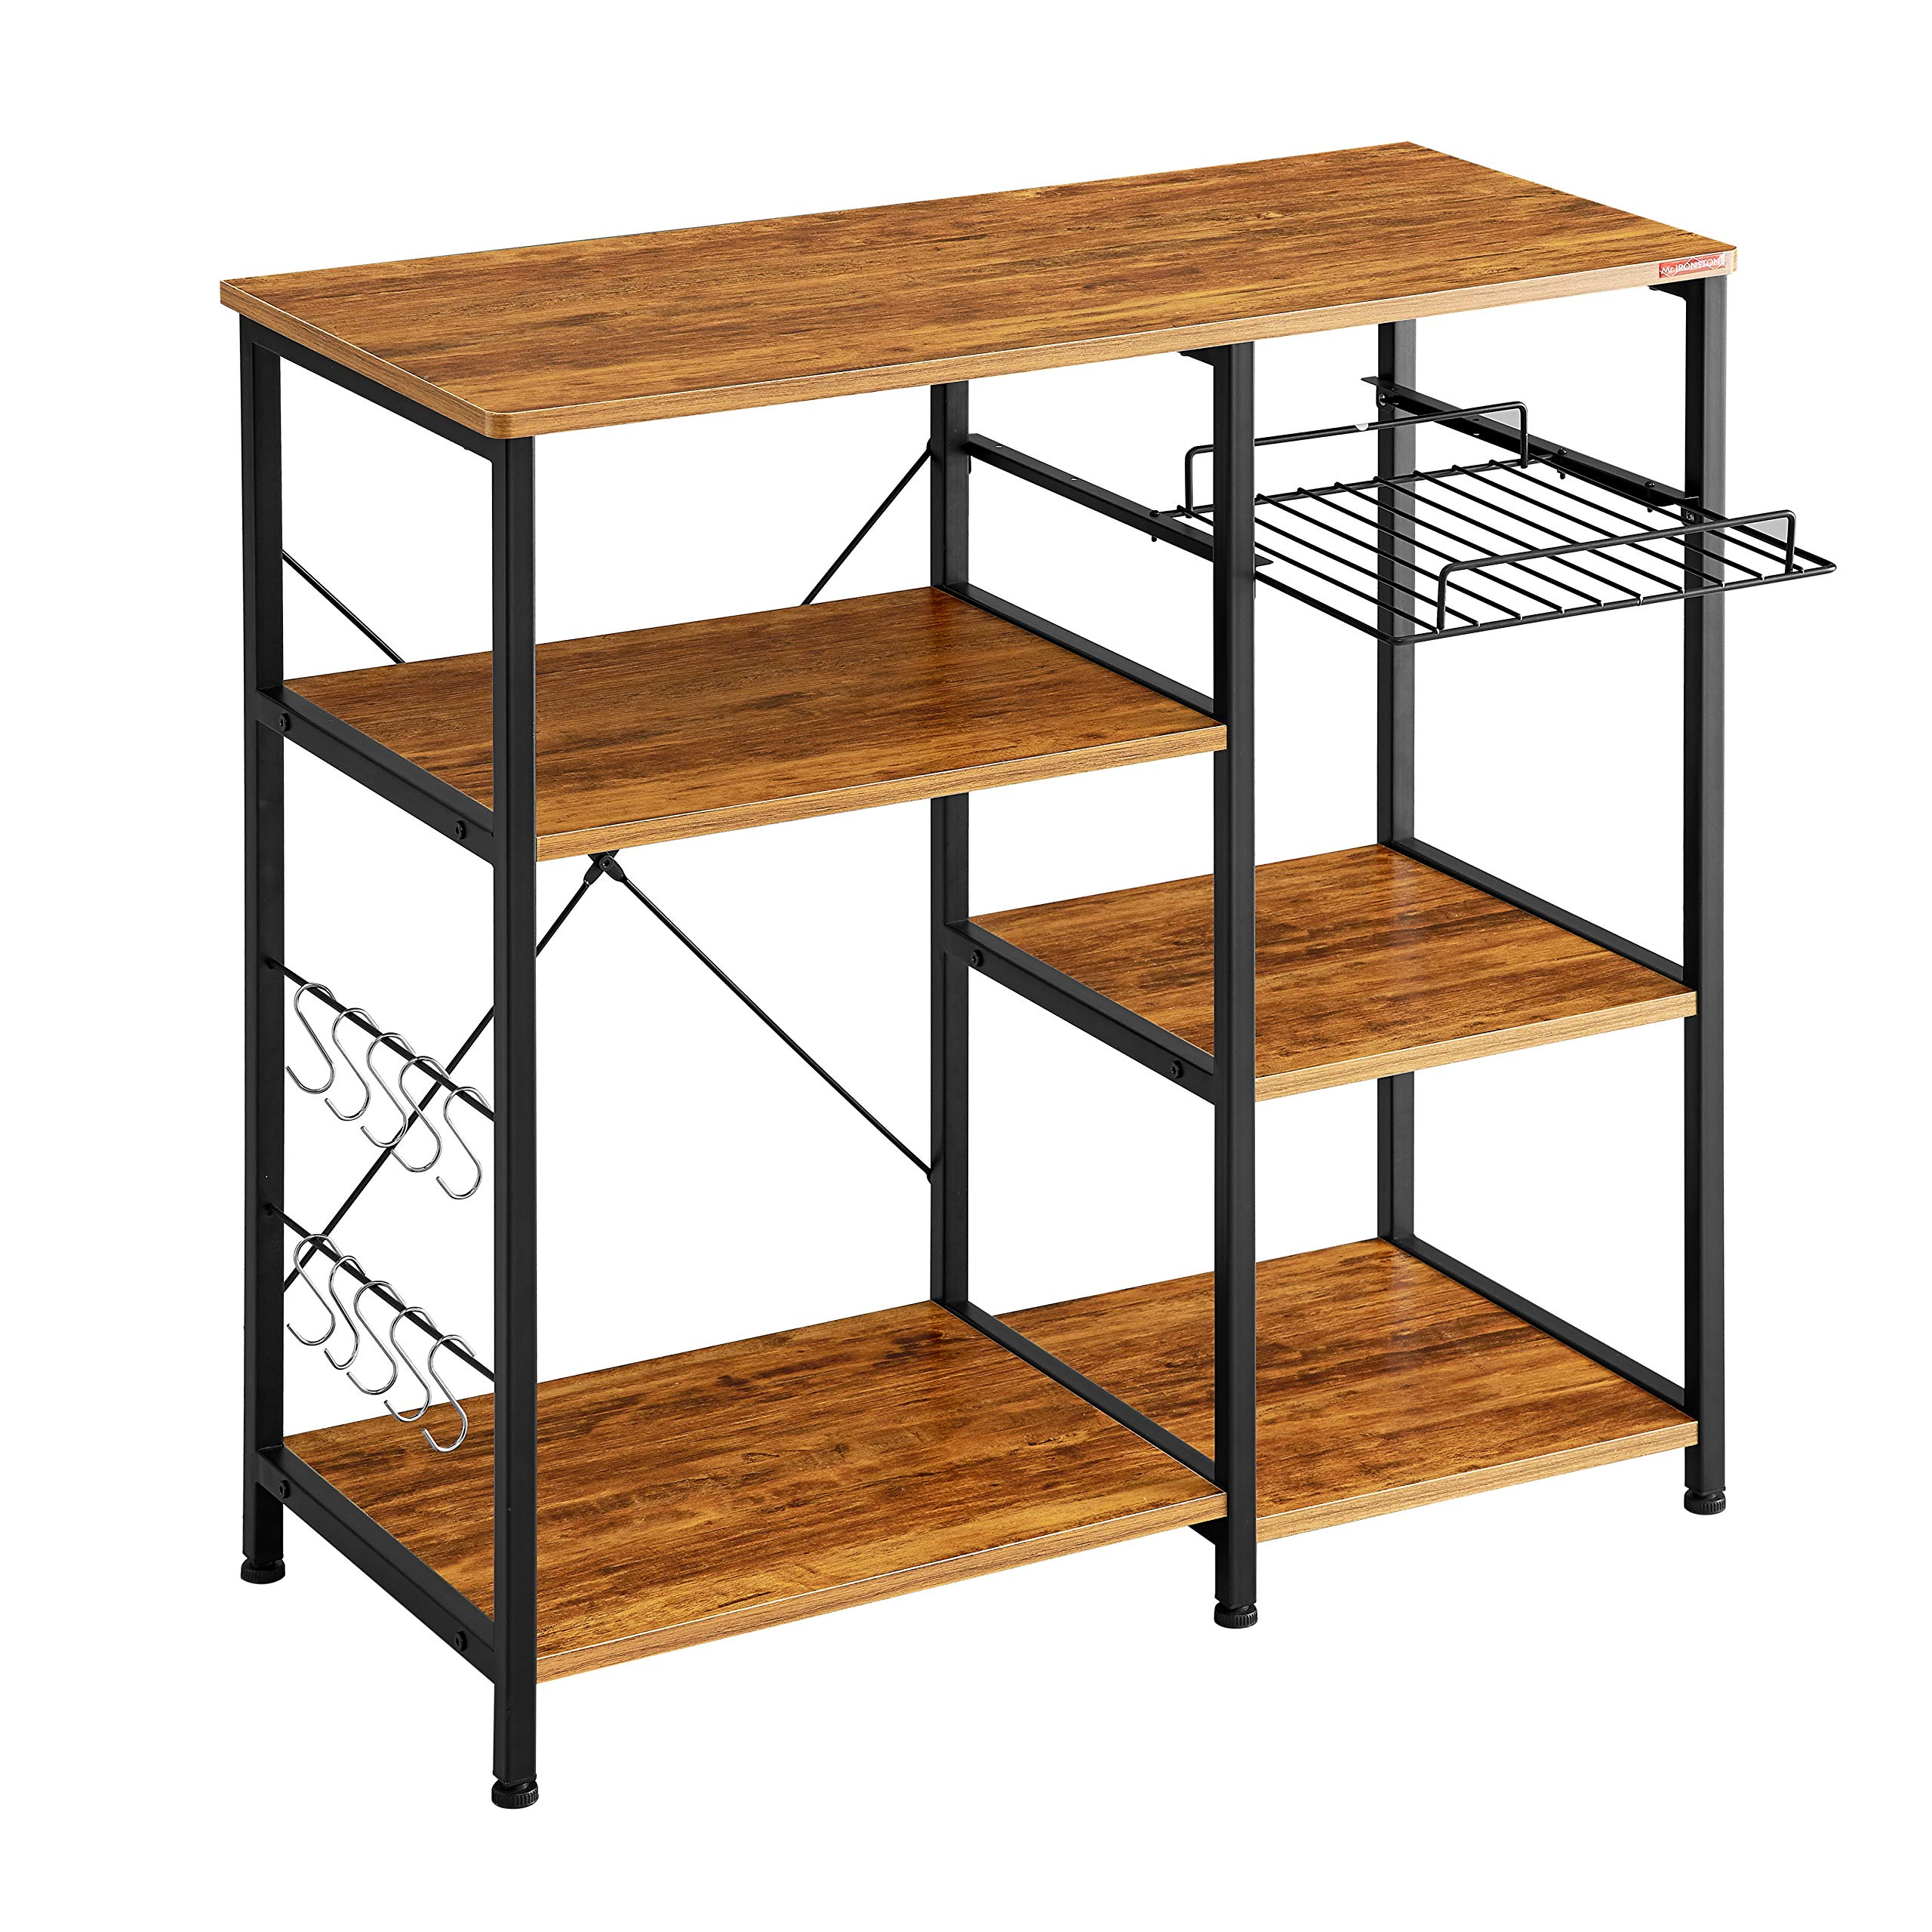 Mr IRONSTONE Kitchen Baker's Rack Vintage Utility Storage Shelf Microwave Stand 3-Tier+3-Tier Table for Spice Rack Organizer Workstation by Mr IRONSTONE